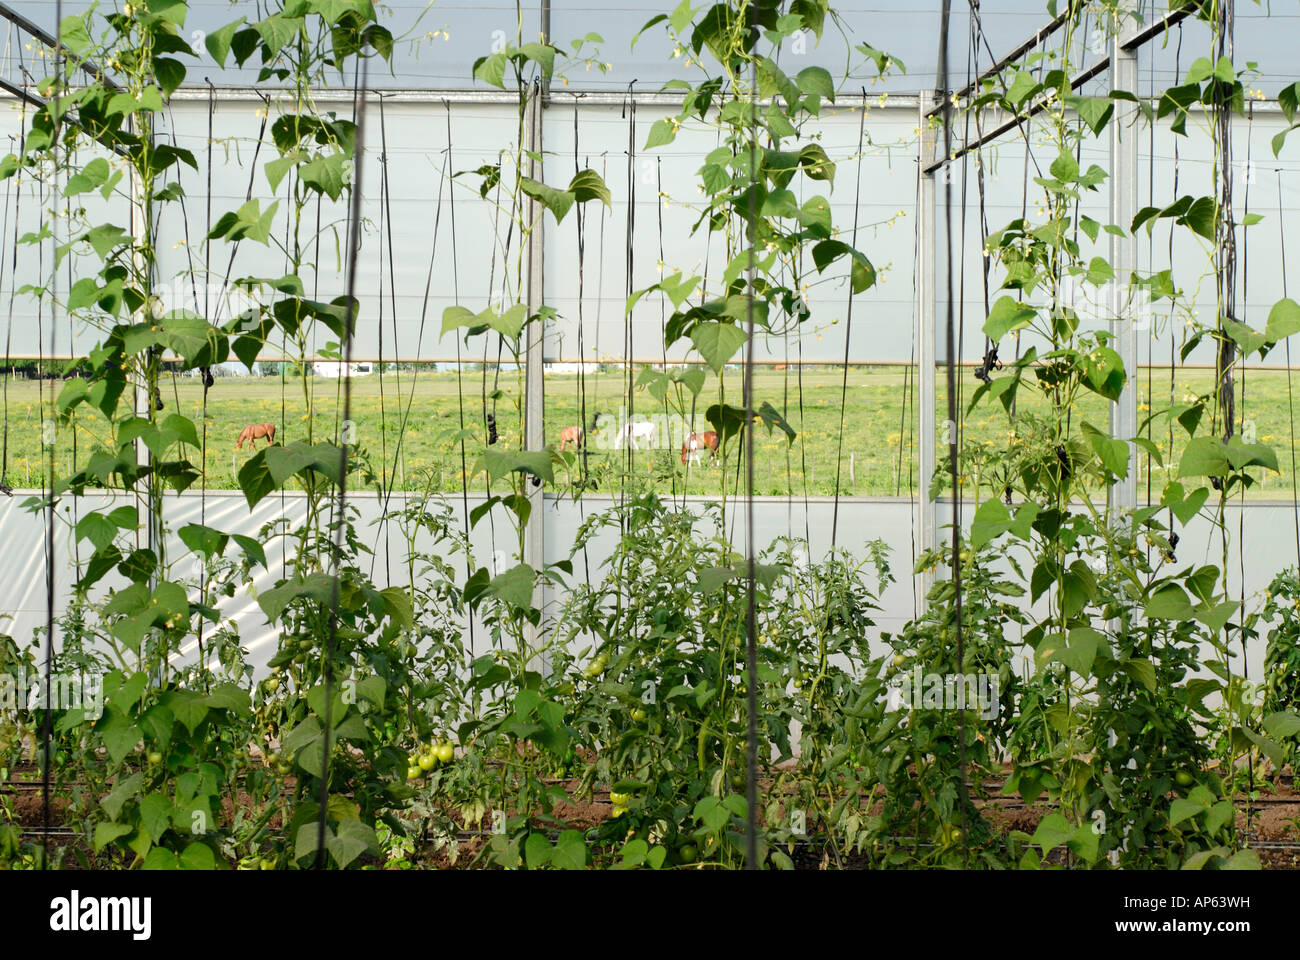 Green beans plants growing inside greenhouse stock photo for Indoor gardening green beans